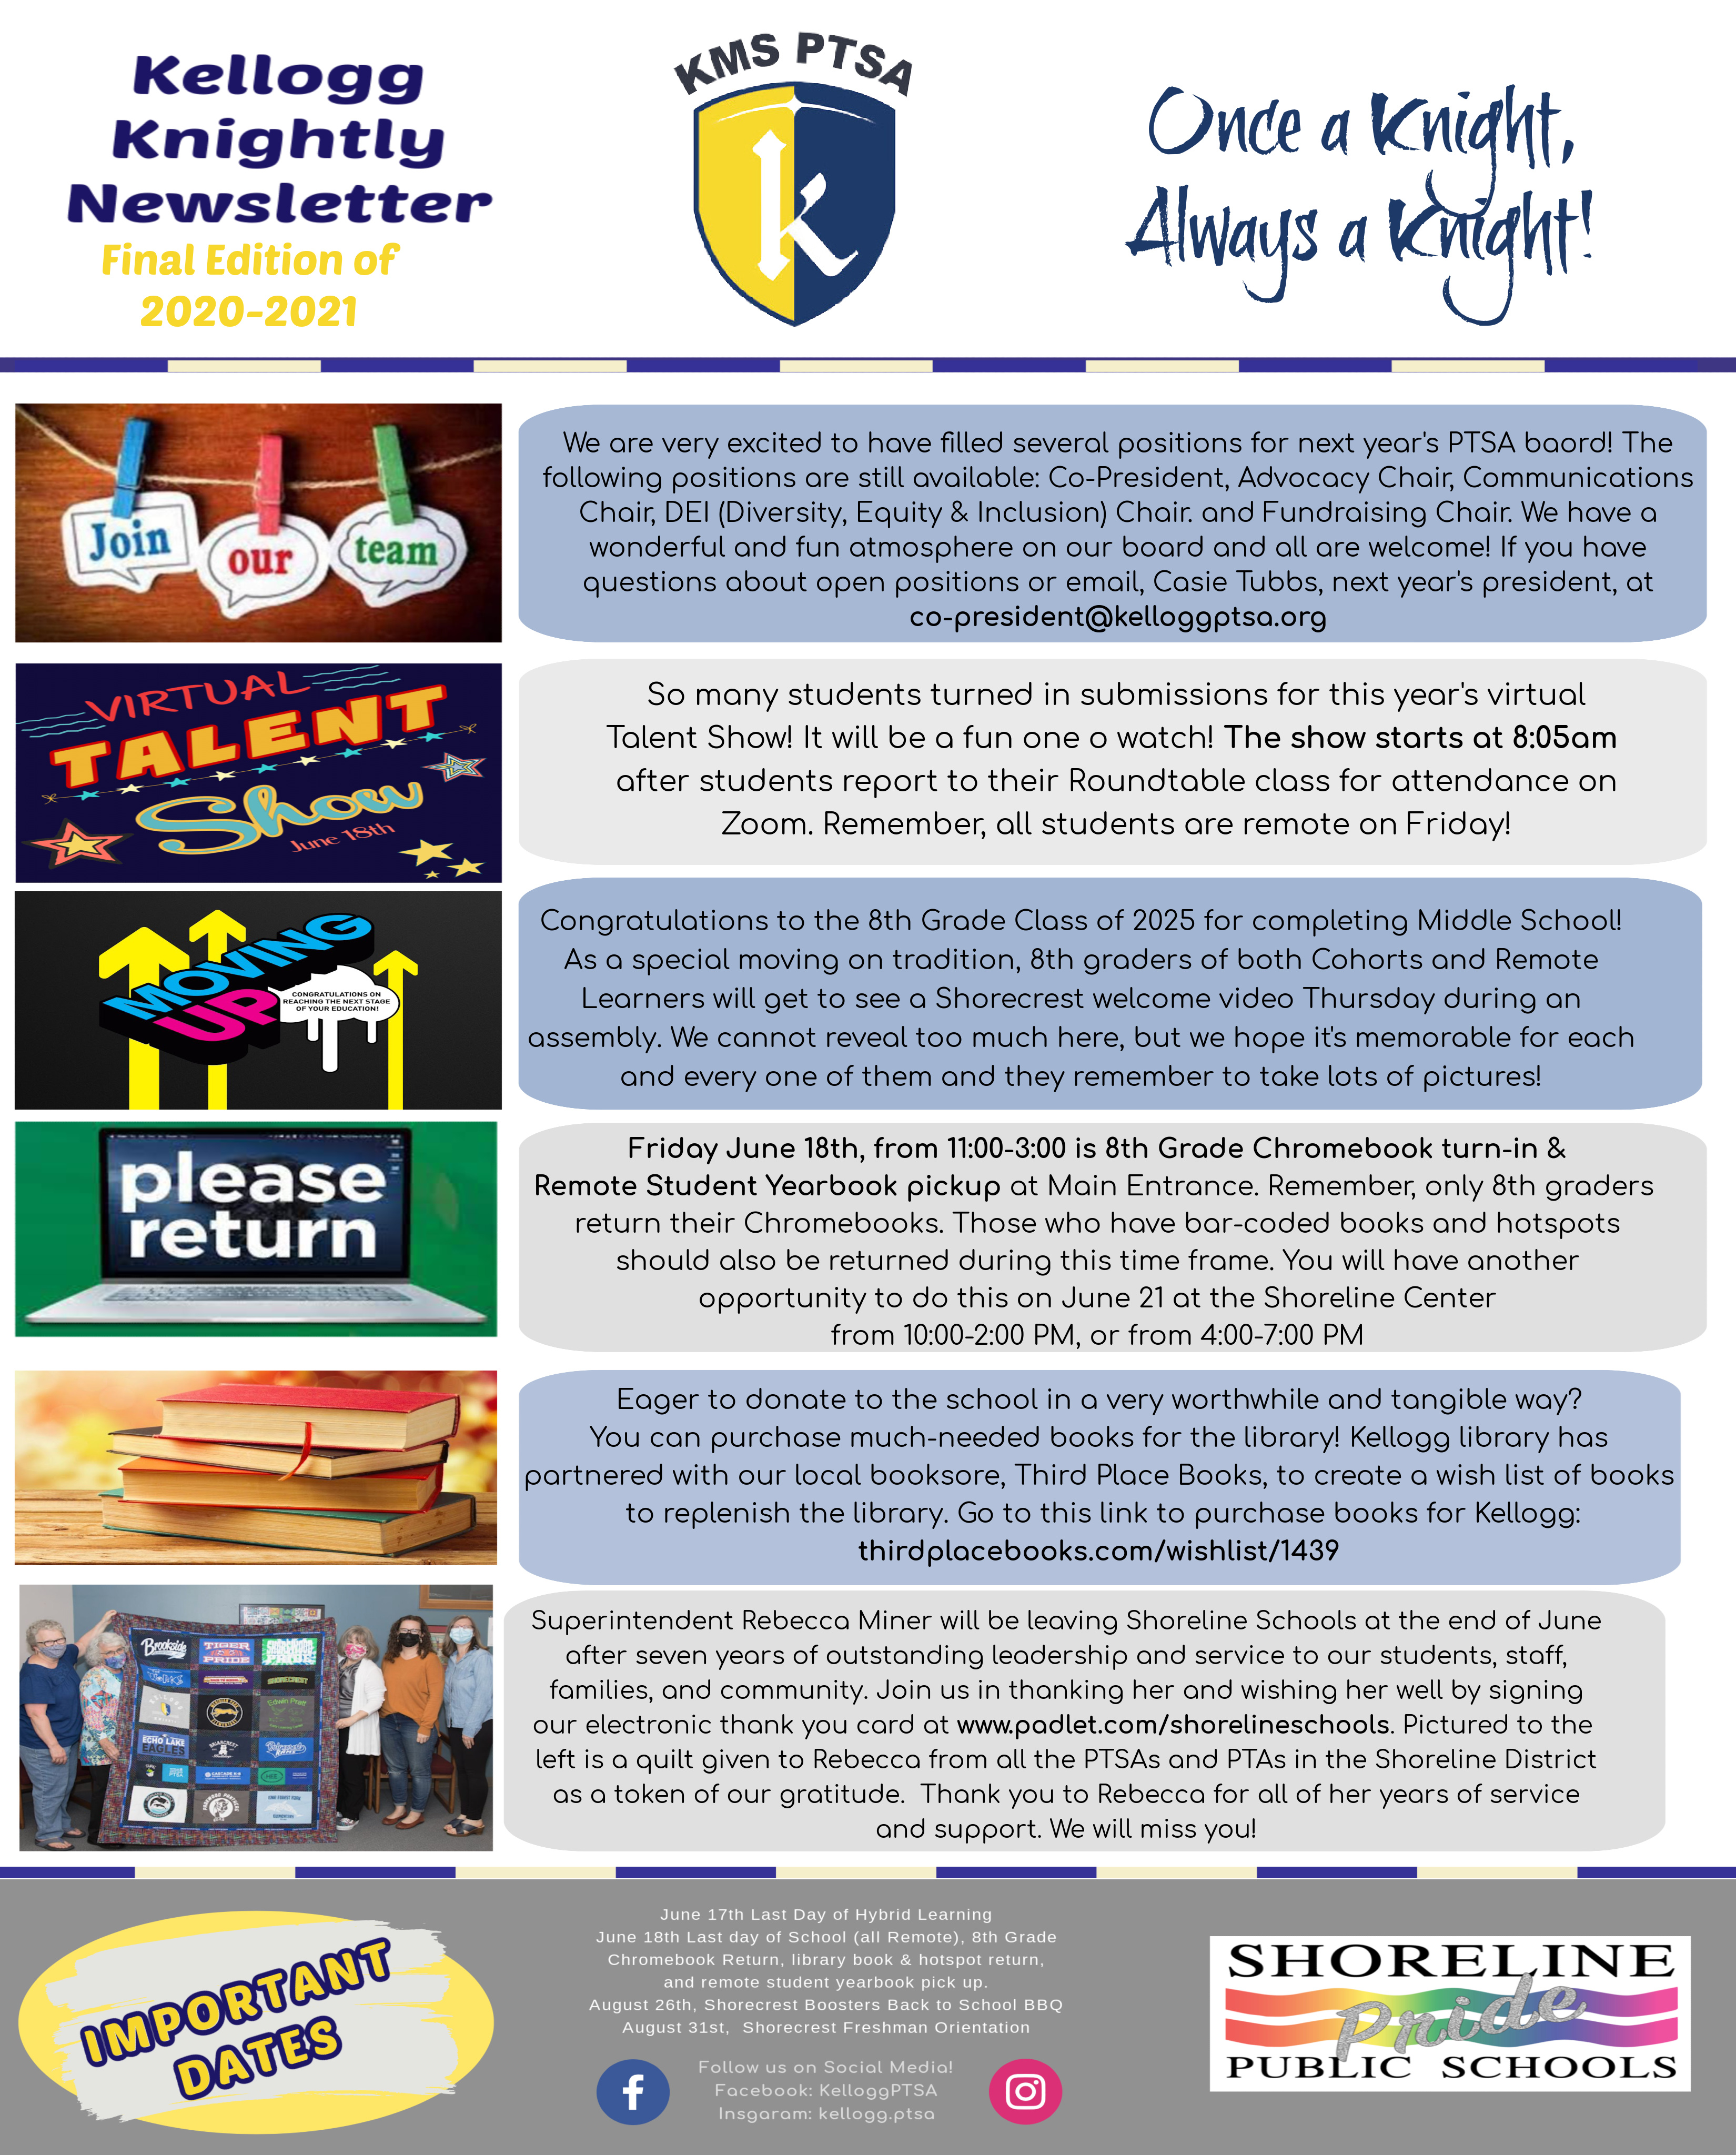 Final Edition Knightly News of 2020-2021